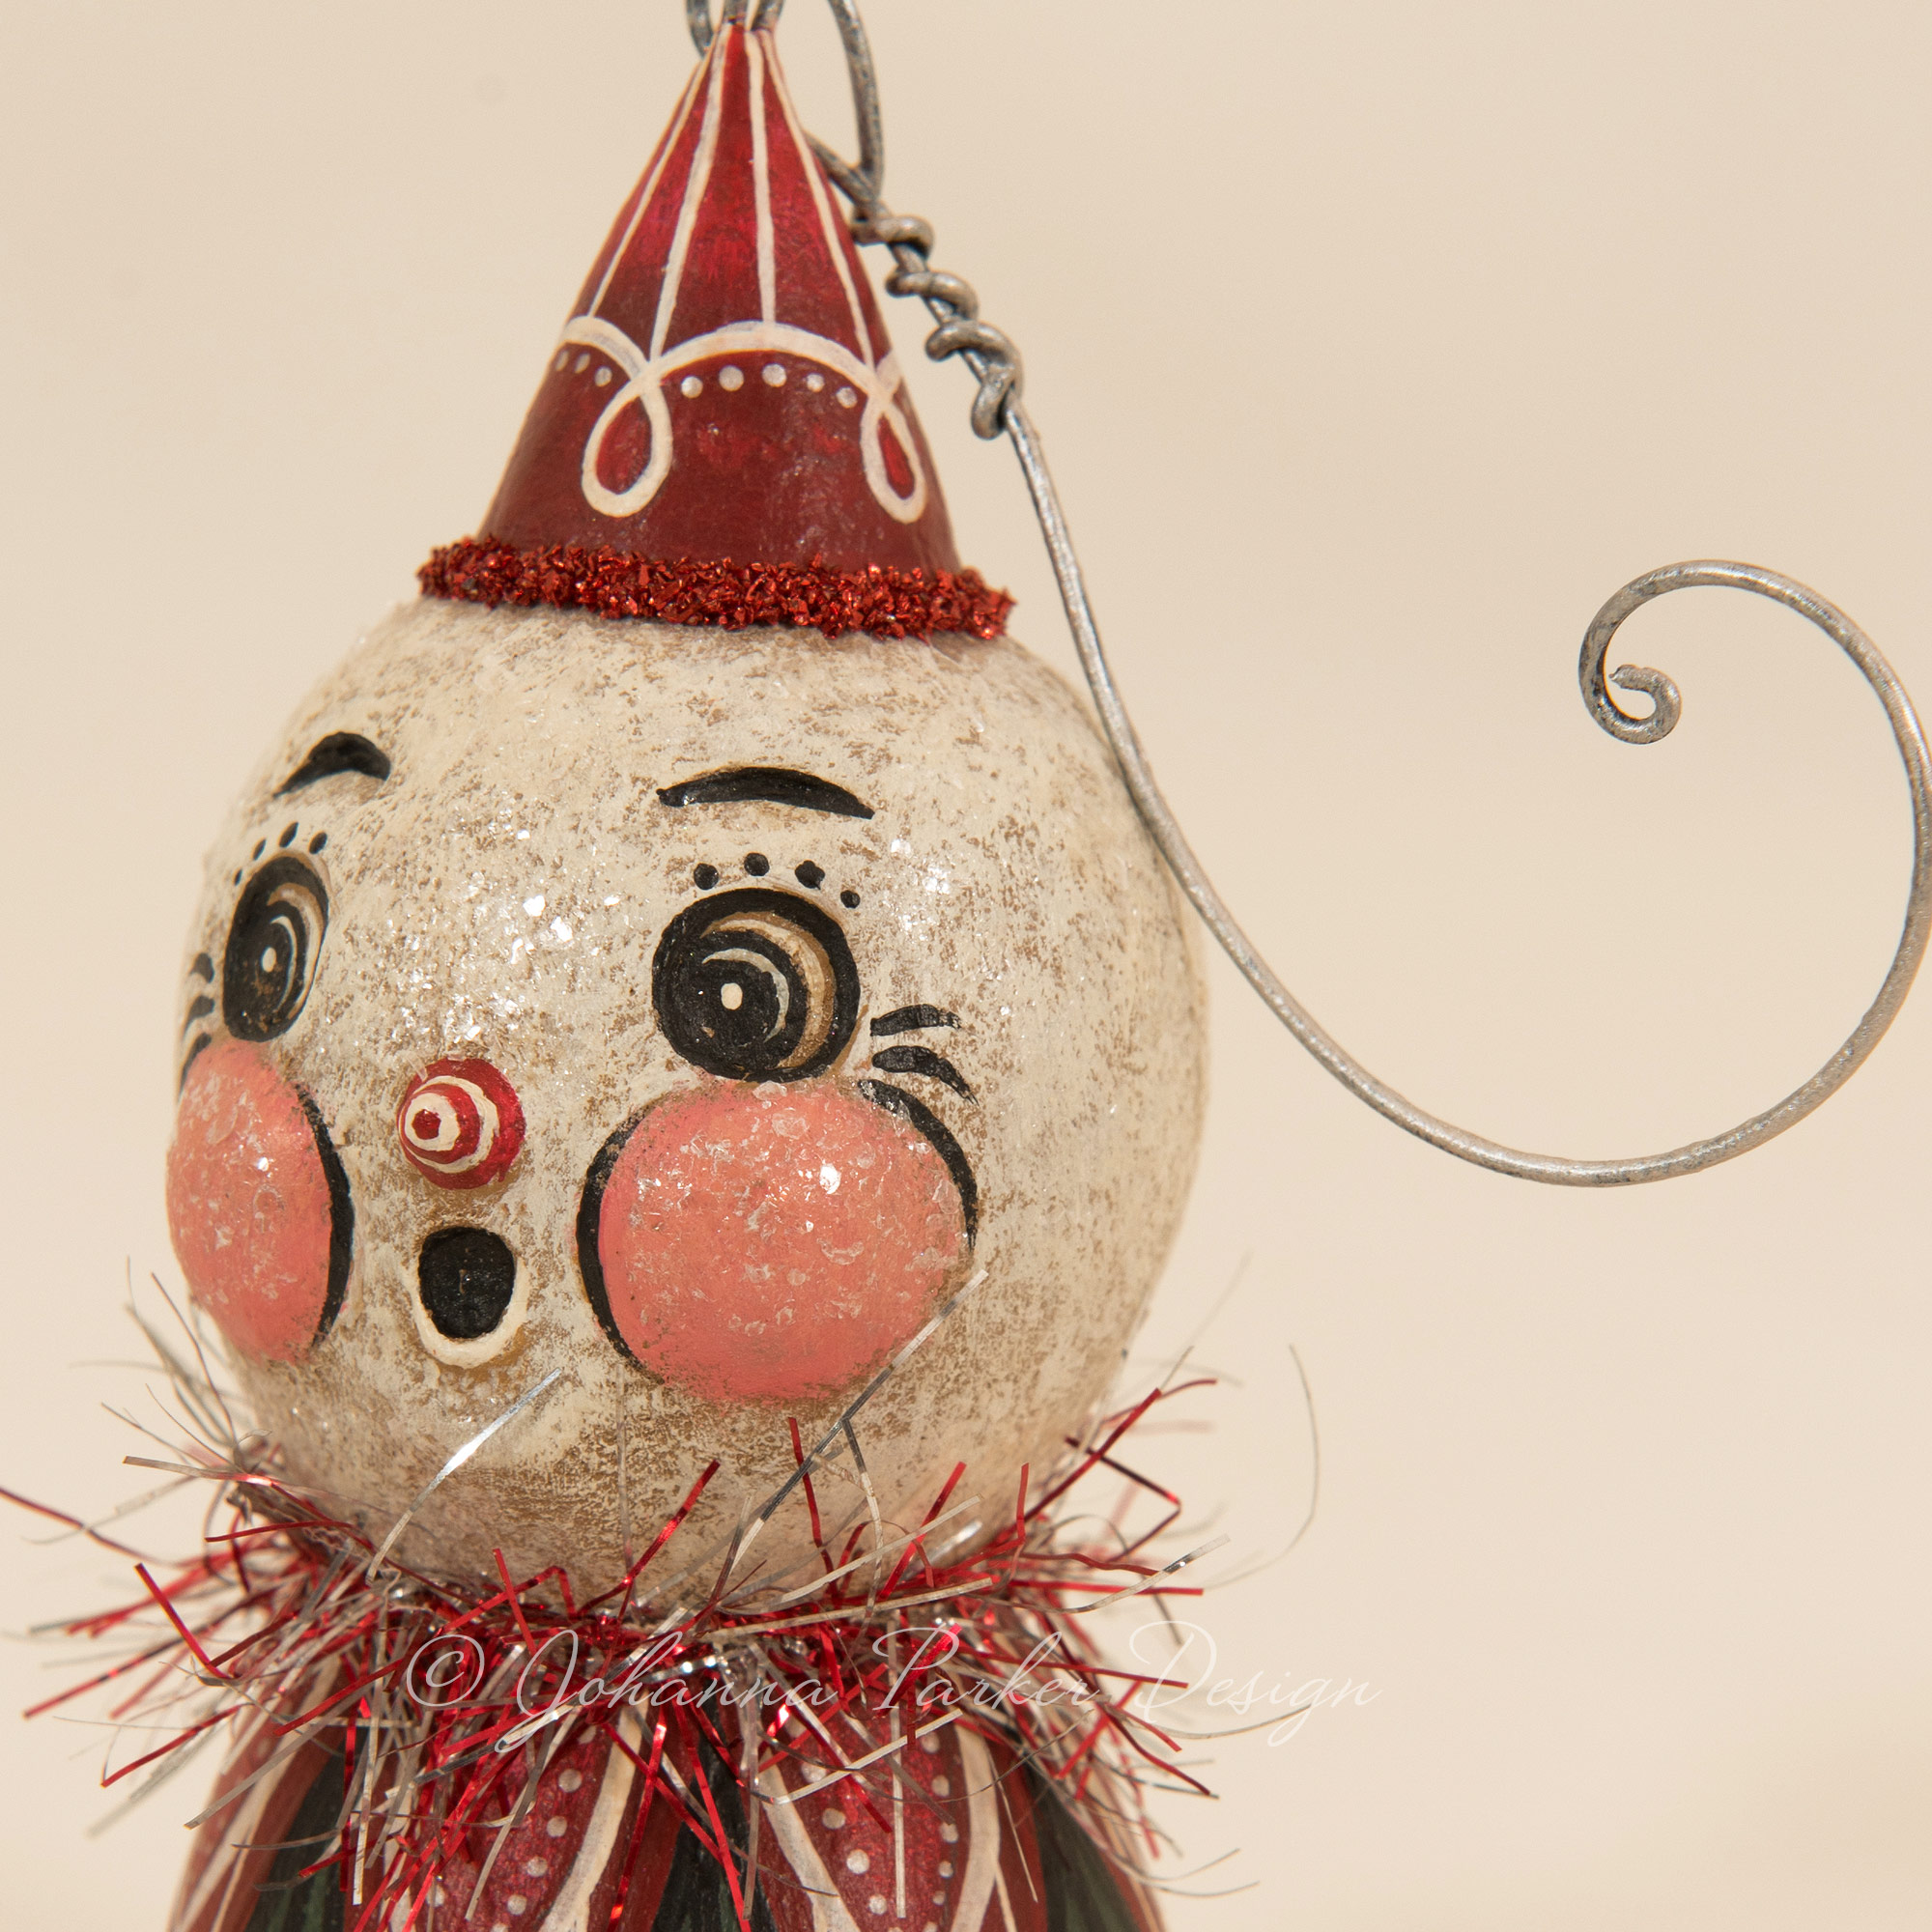 Johanna-Parker-Holly-Snowman-Bell-Ornament-6.jpg